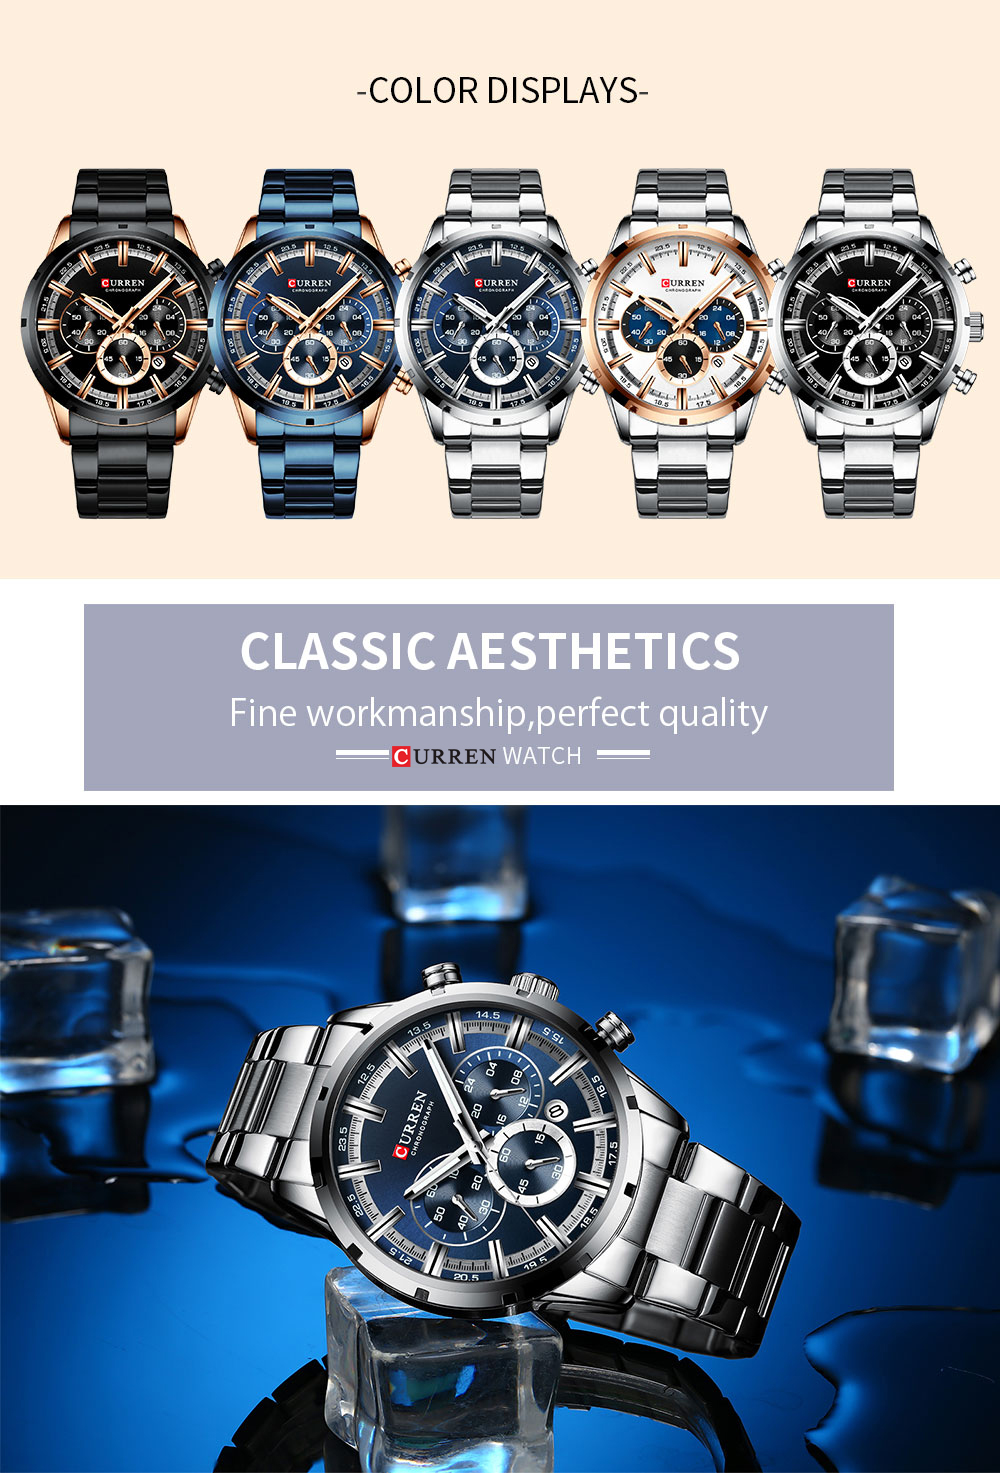 He09530c71a9744528adfb31d07c317f0z CURREN Top Brand Military Quartz Watches Silver Clock Mens Quartz Stainless Steel Chronograph Watch for Men Casual Sporty Watch